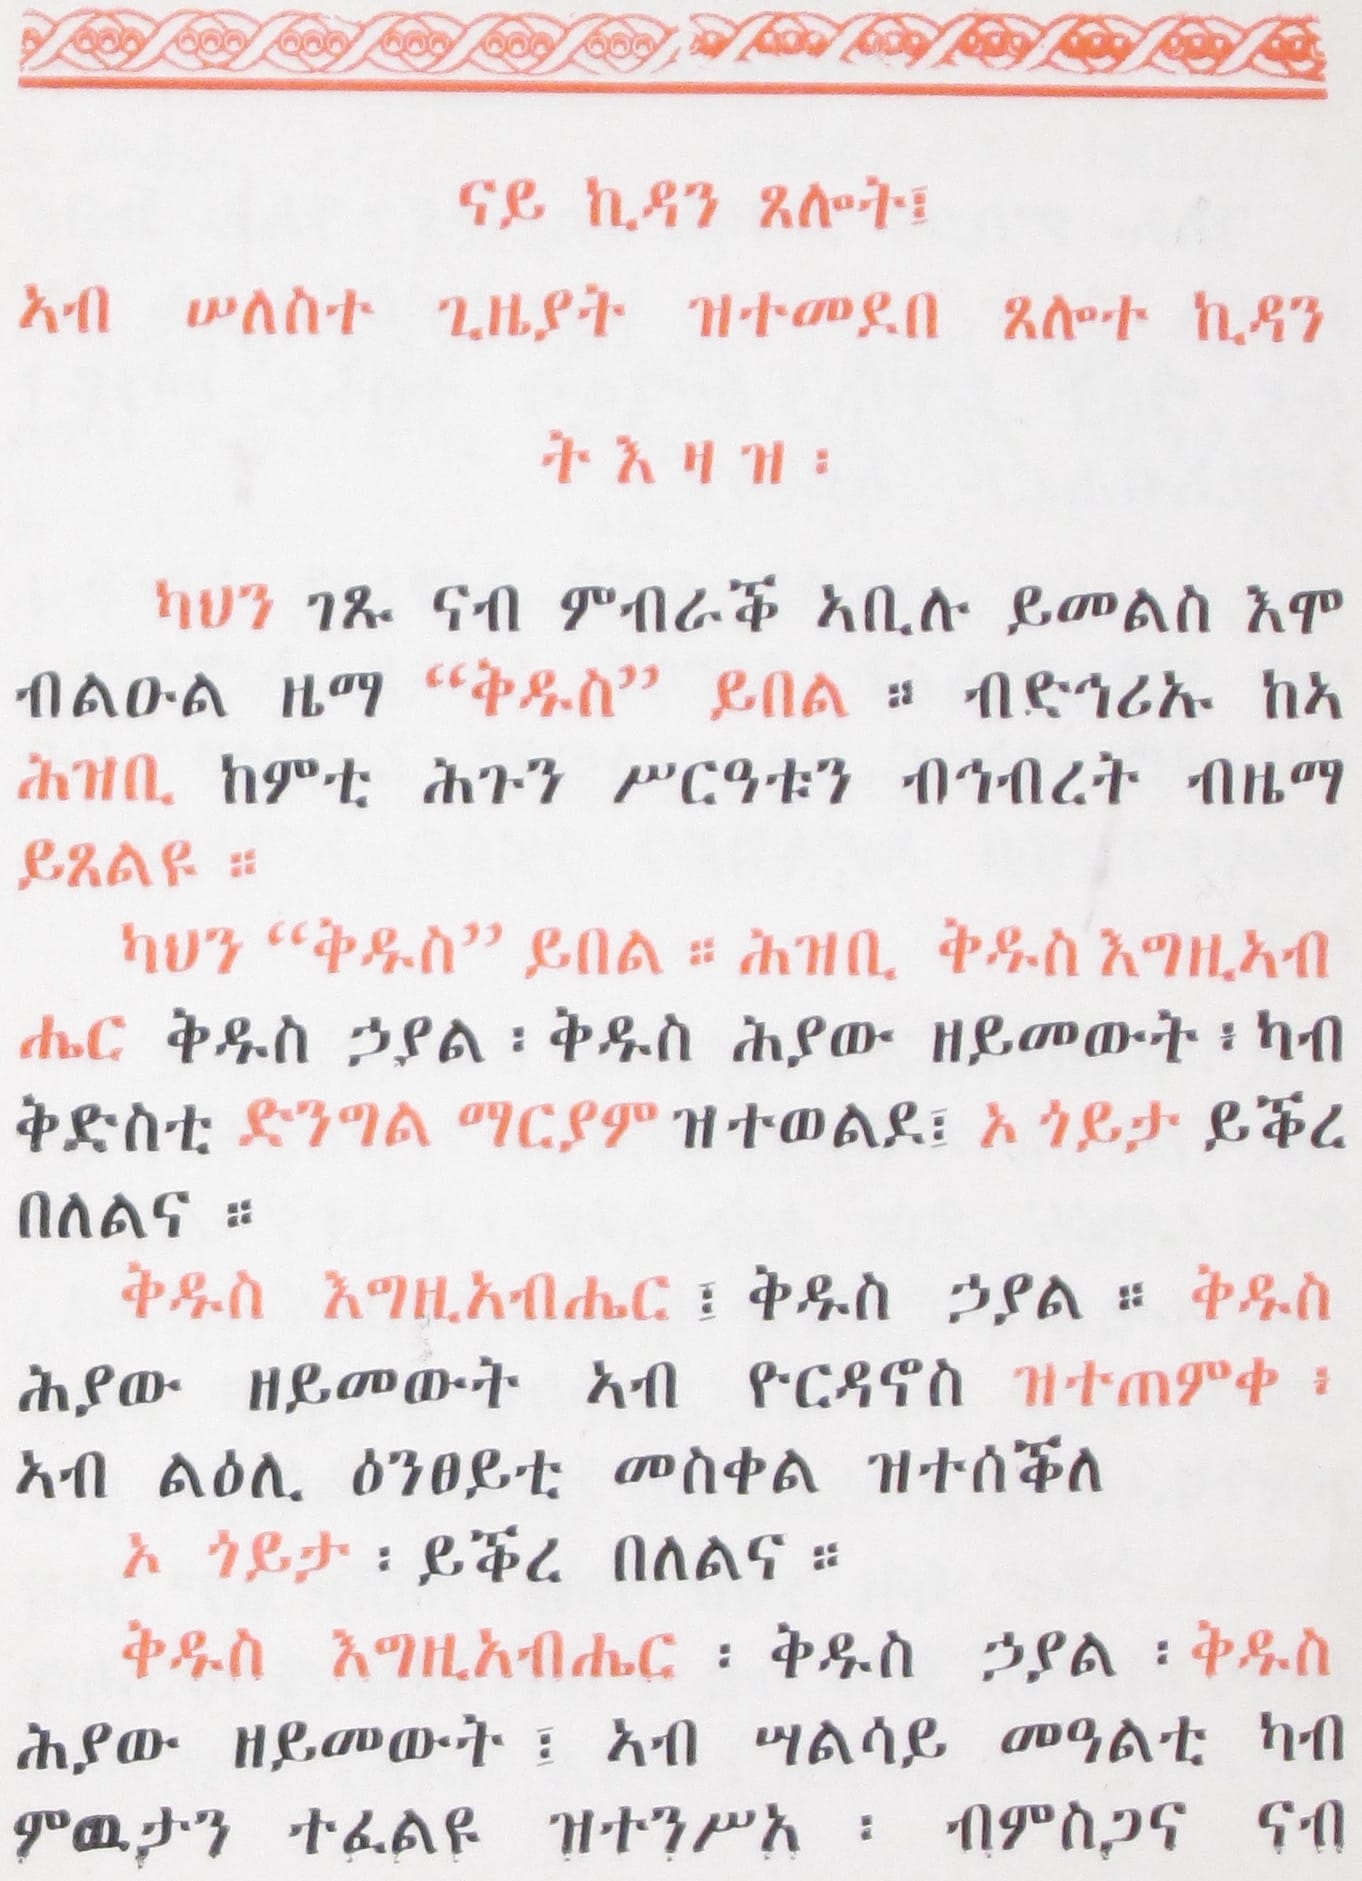 Ethiopic layout requirements ecclesiastical emphasis sample from maafa alot mes serate kiddase betegre page 32 woldemariam 1995 1988 ec biocorpaavc Gallery